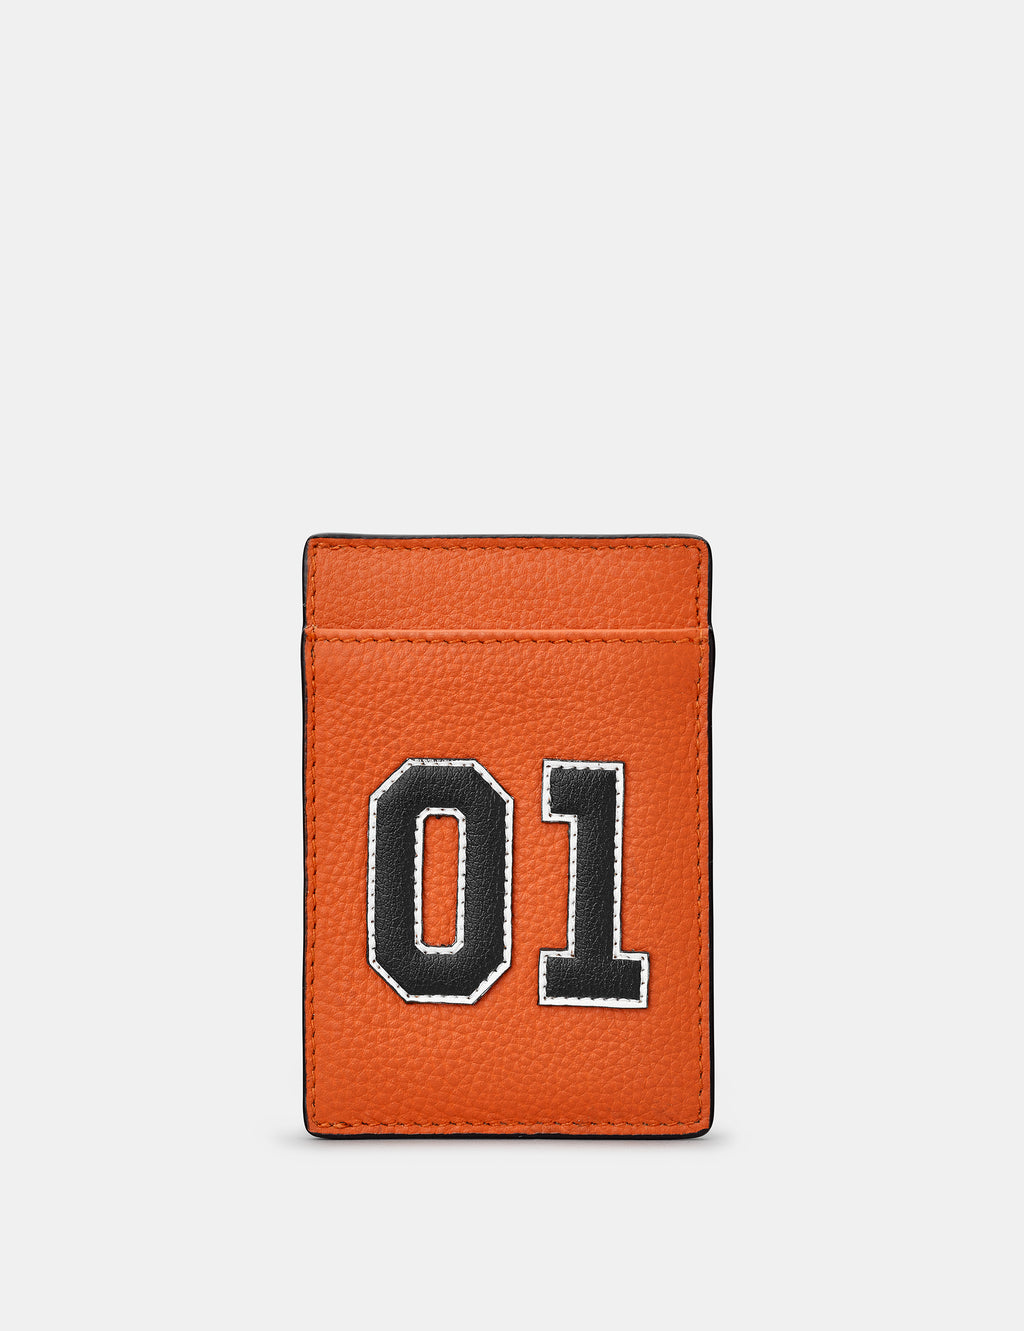 Car Livery No. 01 Compact Leather Card Holder